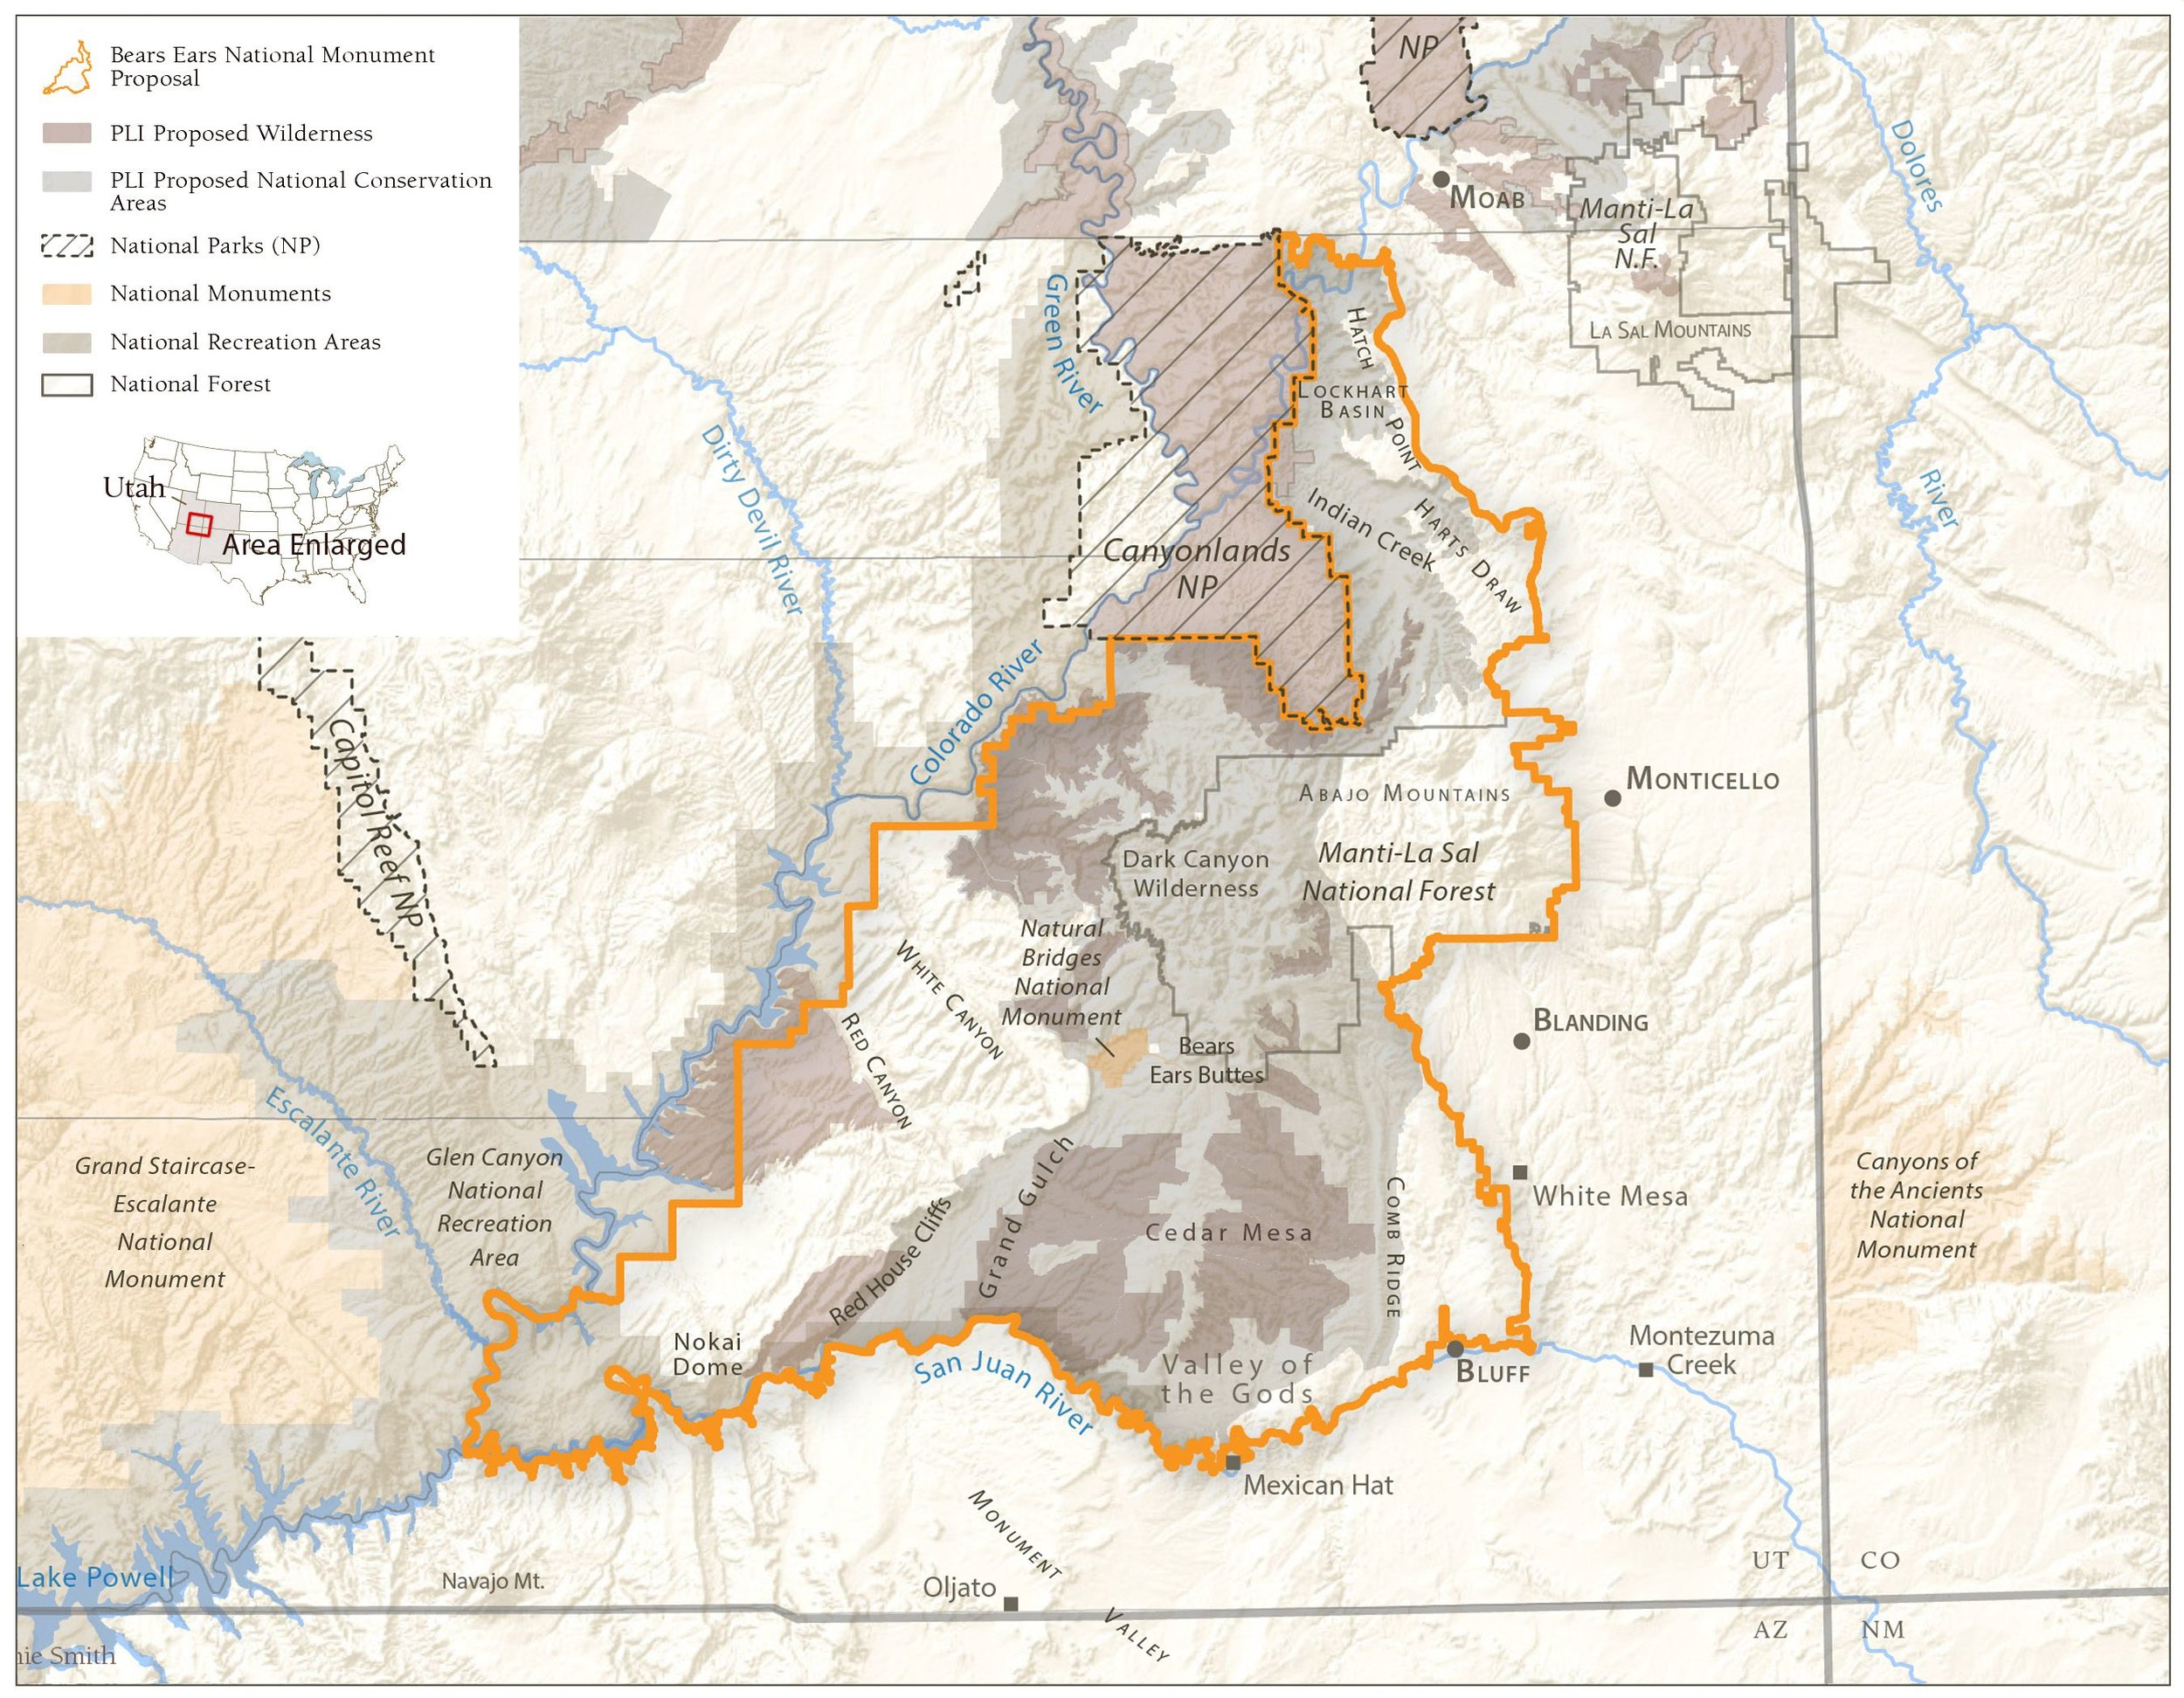 PLI vs Bears Ears National Monument Proposals